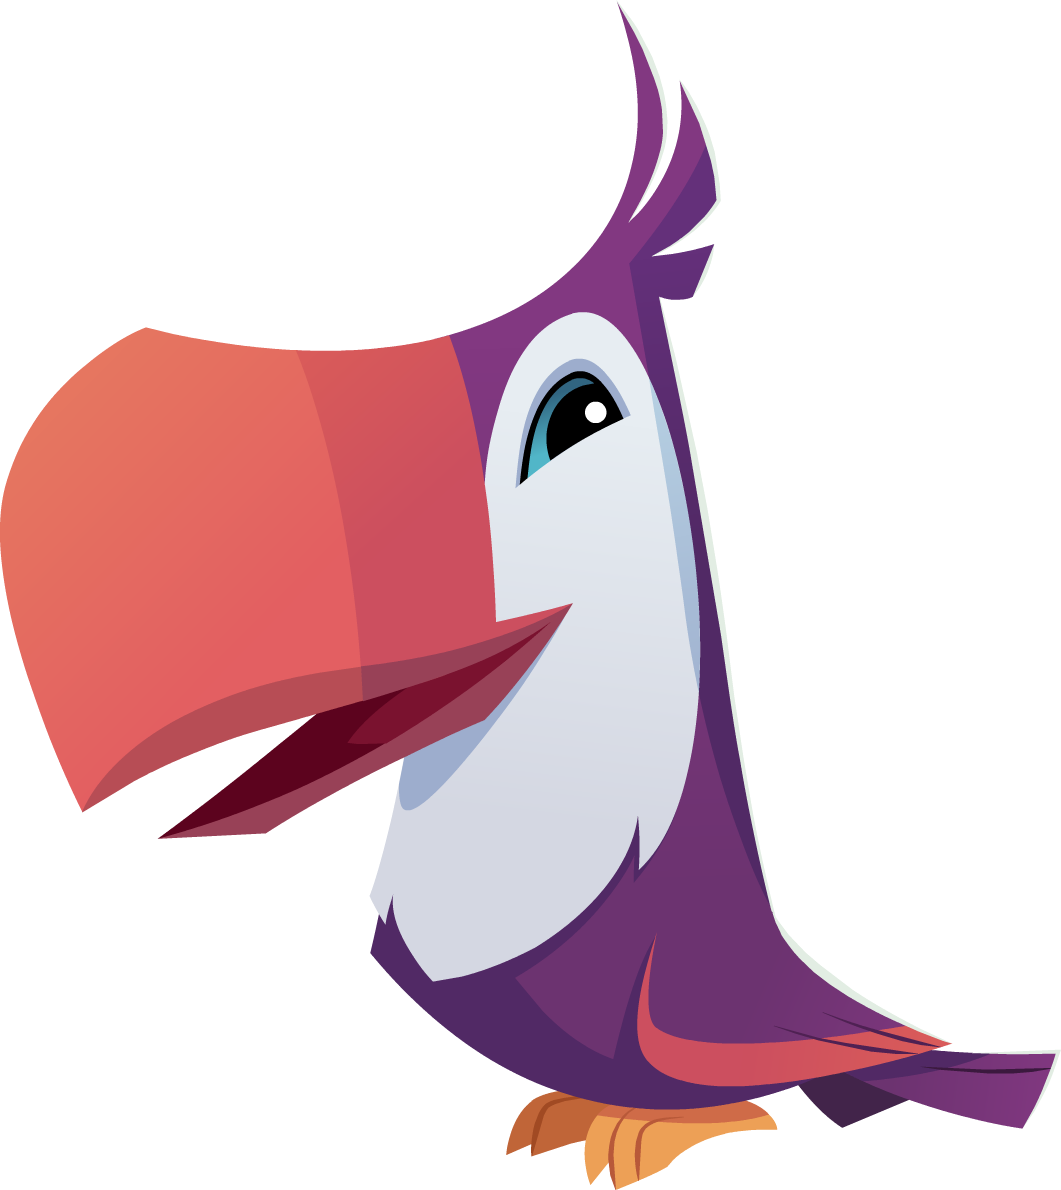 Toucan clipart real animal #13